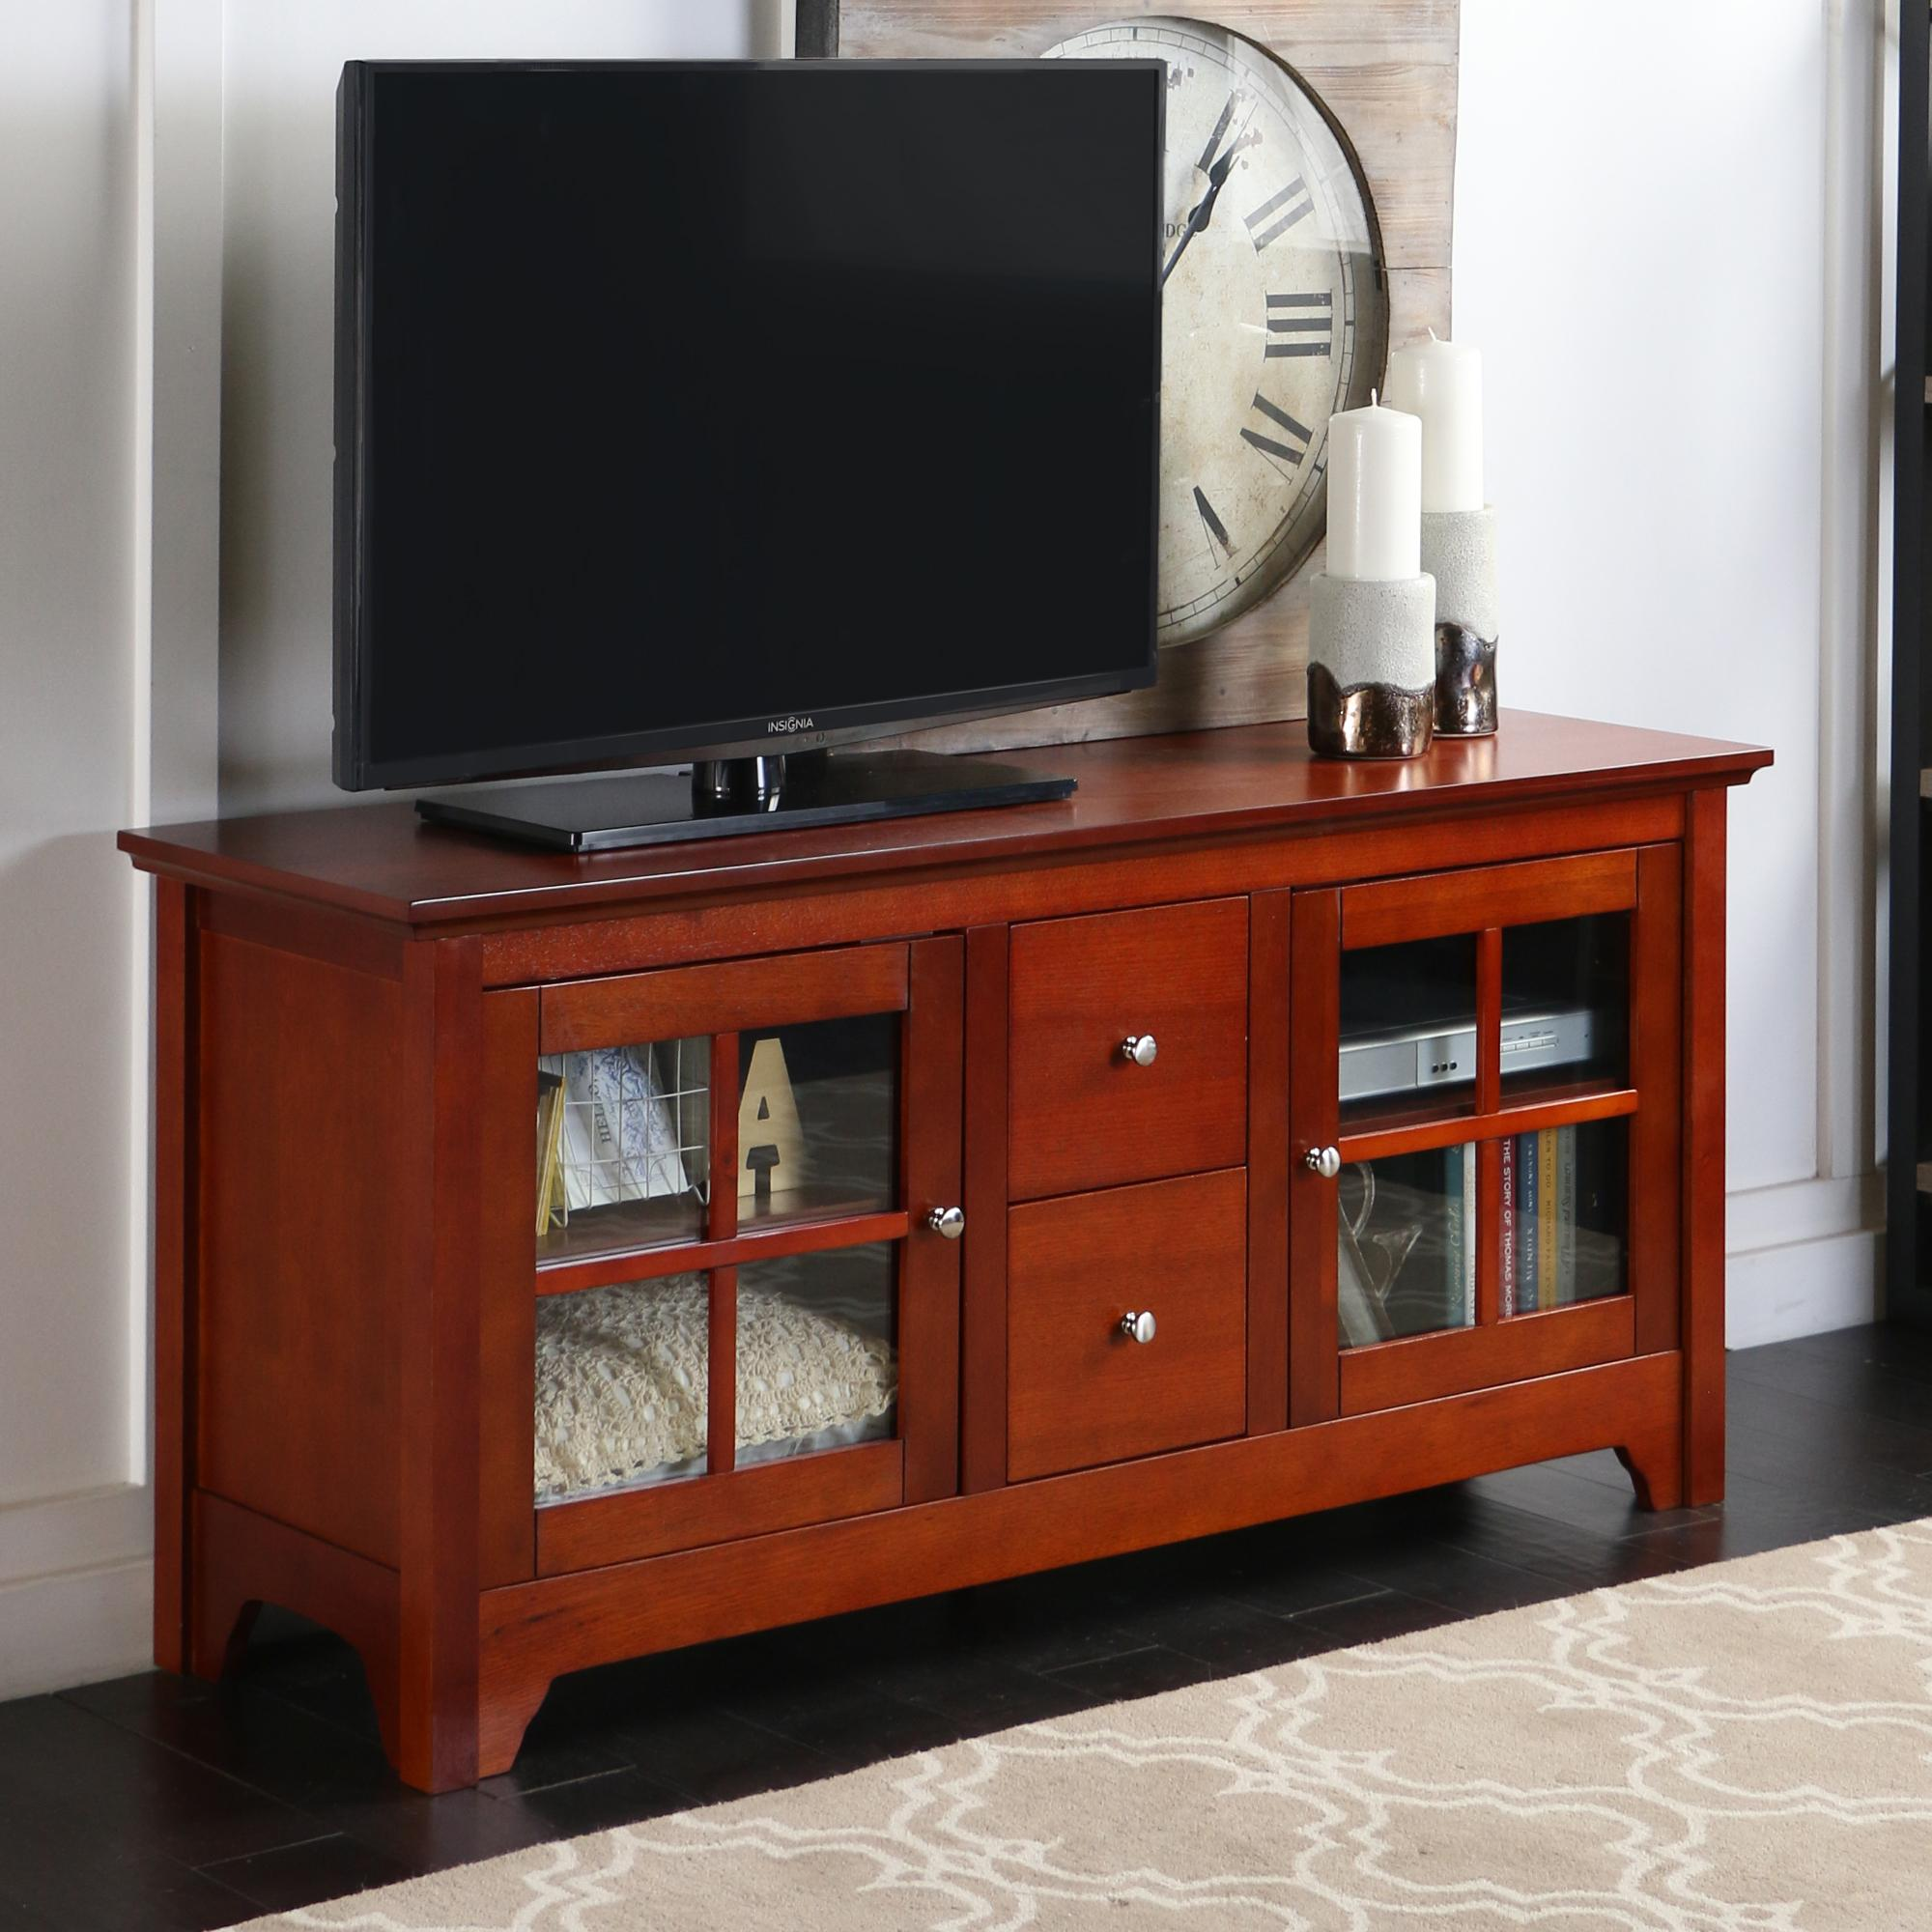 Amazon Com Walker Edison 53 Wood Tv Stand Console With Storage